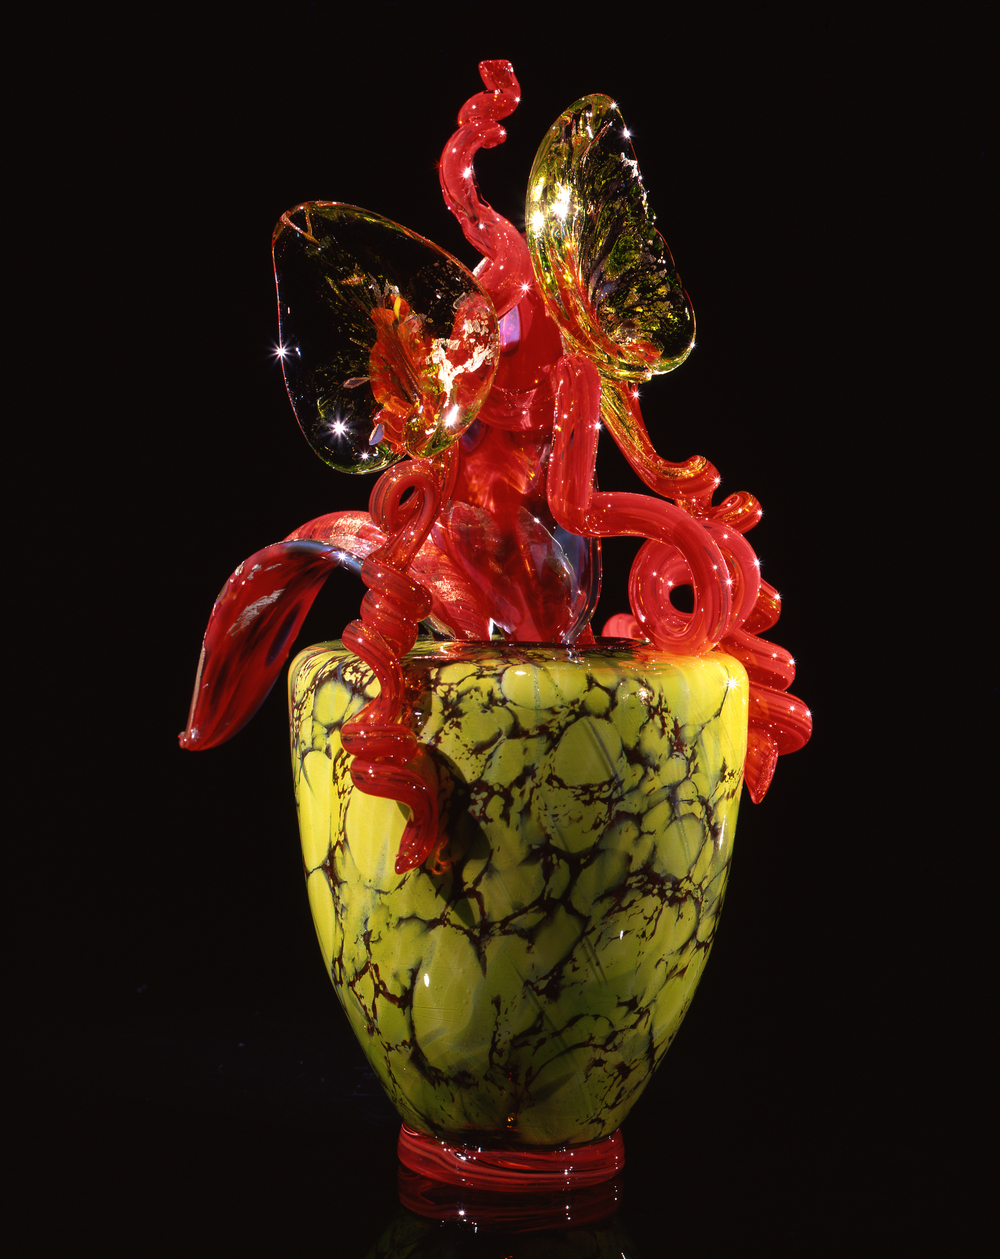 Dale Chihuly,  Chartreuse Piccolo Venetian with Red Flowers  (1993, glass, 11 x 8 x 7 inches)